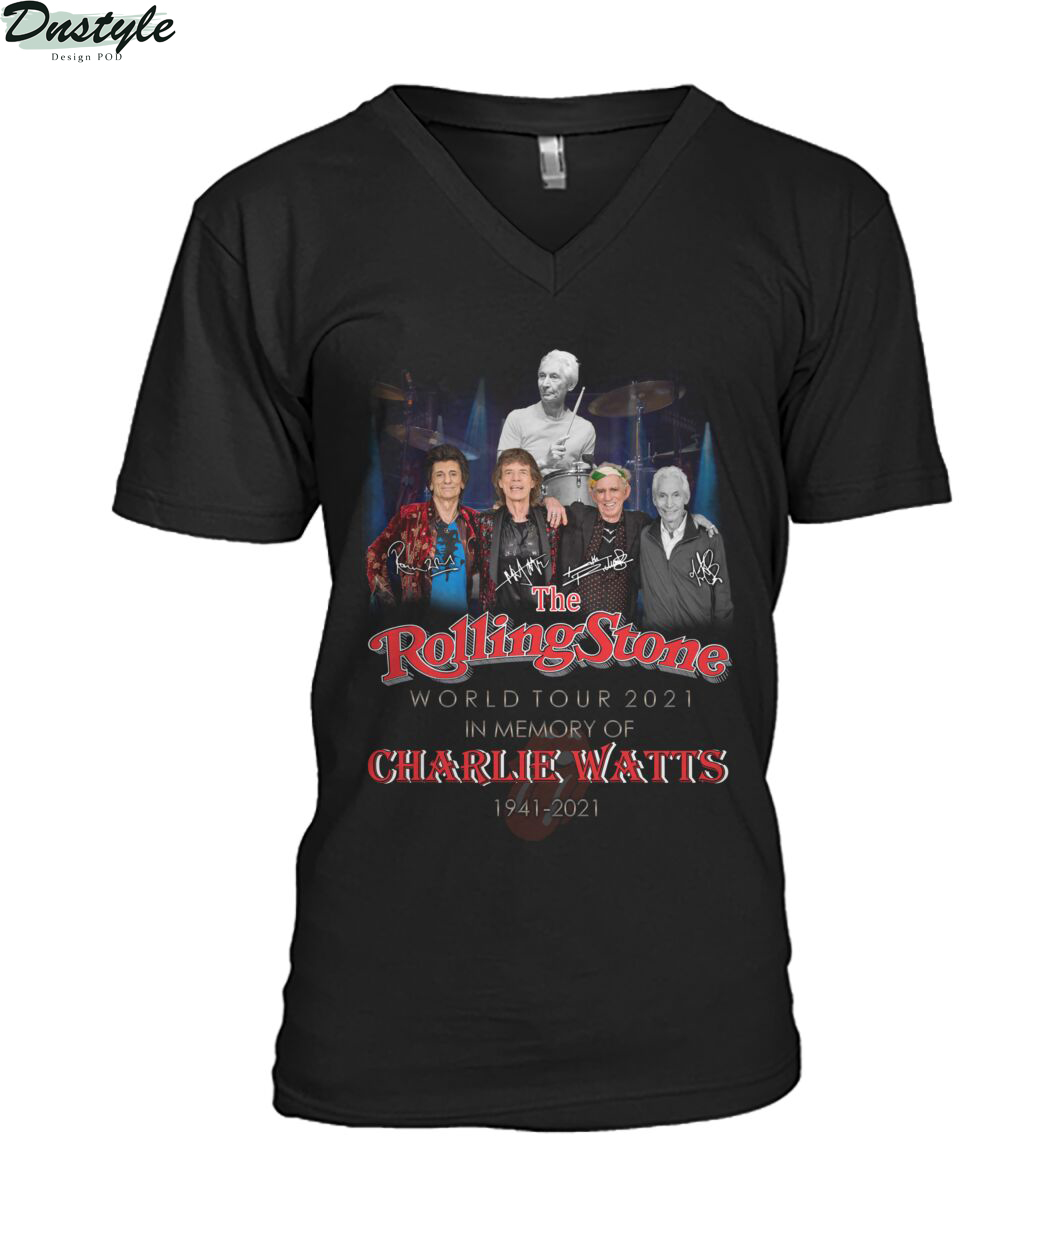 The rolling stone world tour 2021 in memory of Charlie Watts 1941-2021 v-neck